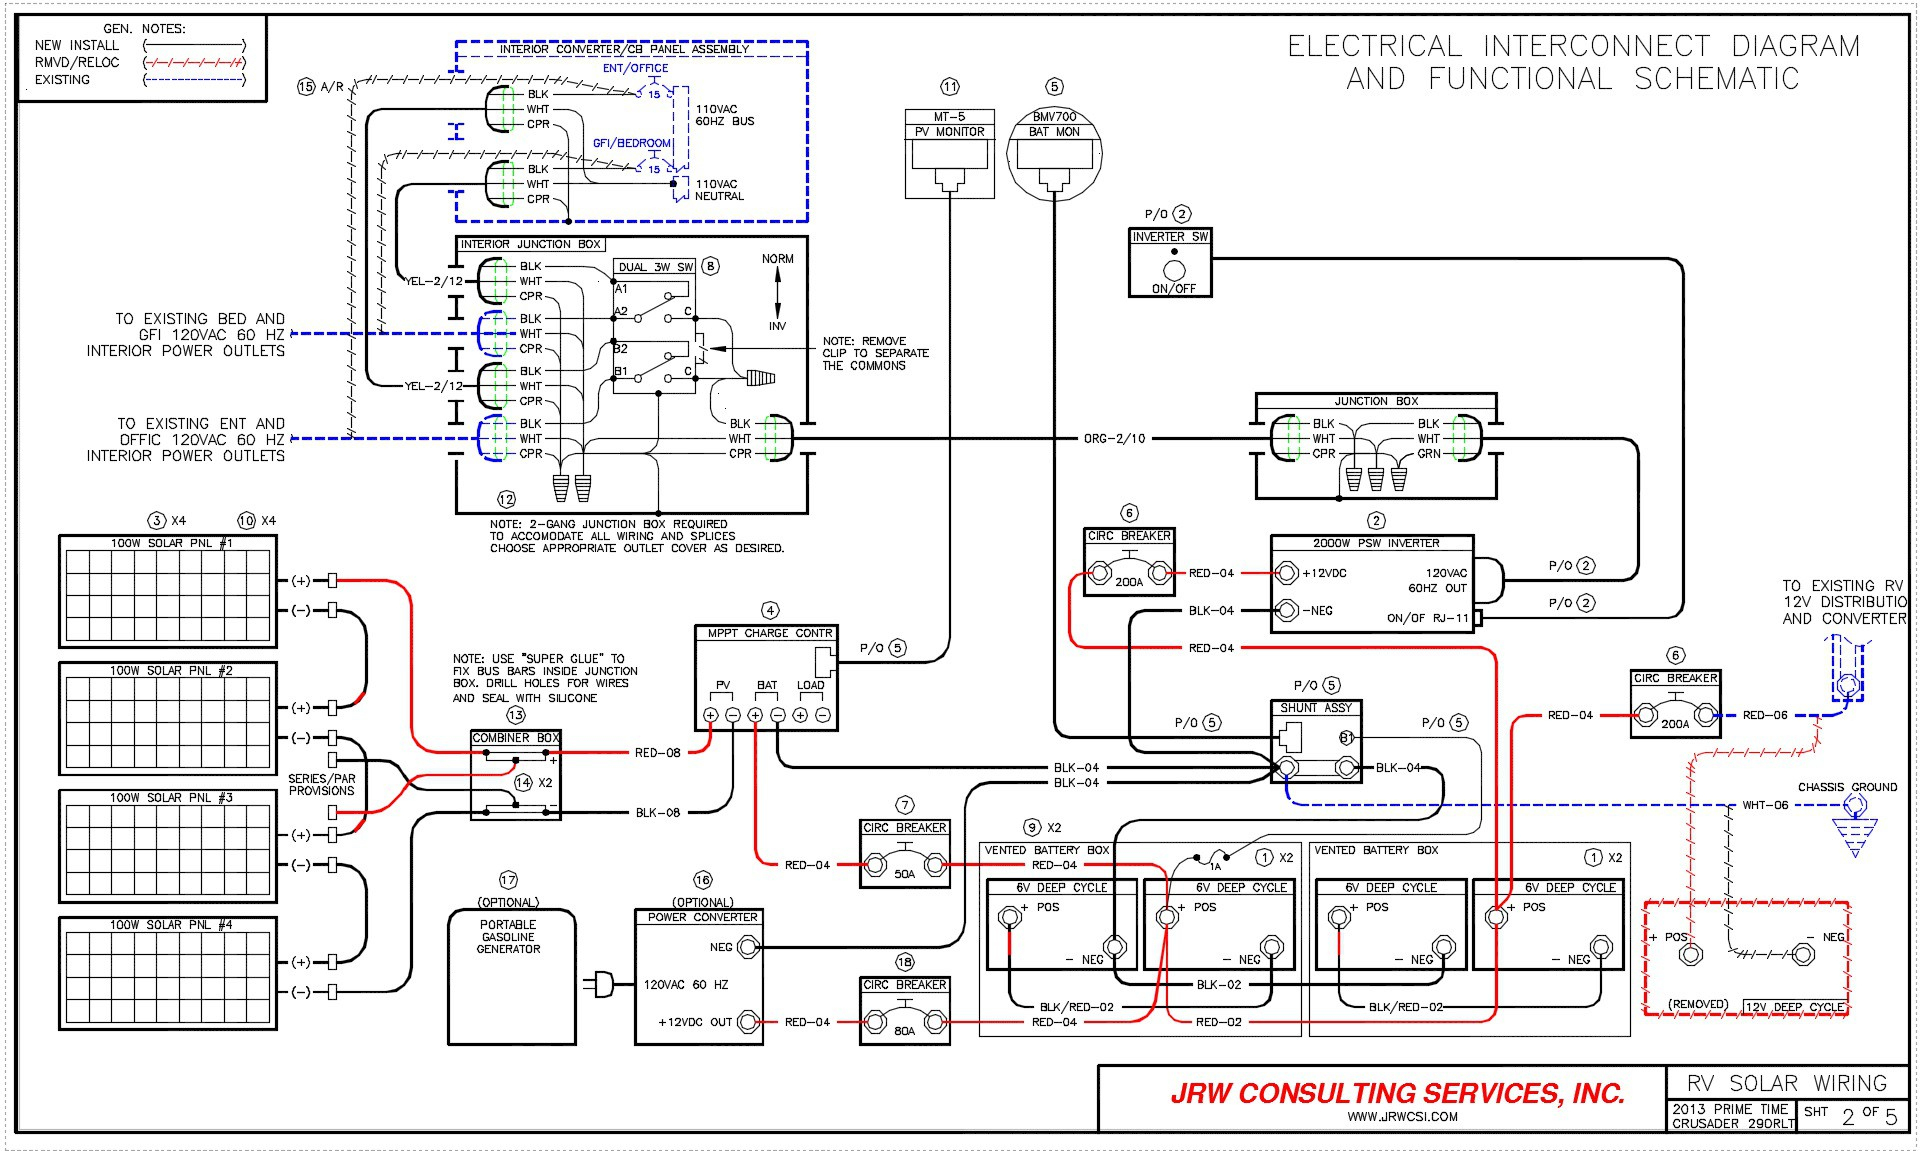 Travel Trailer Wiring Diagram In Camper 15 2 | Hastalavista - Camper Trailer Wiring Diagram